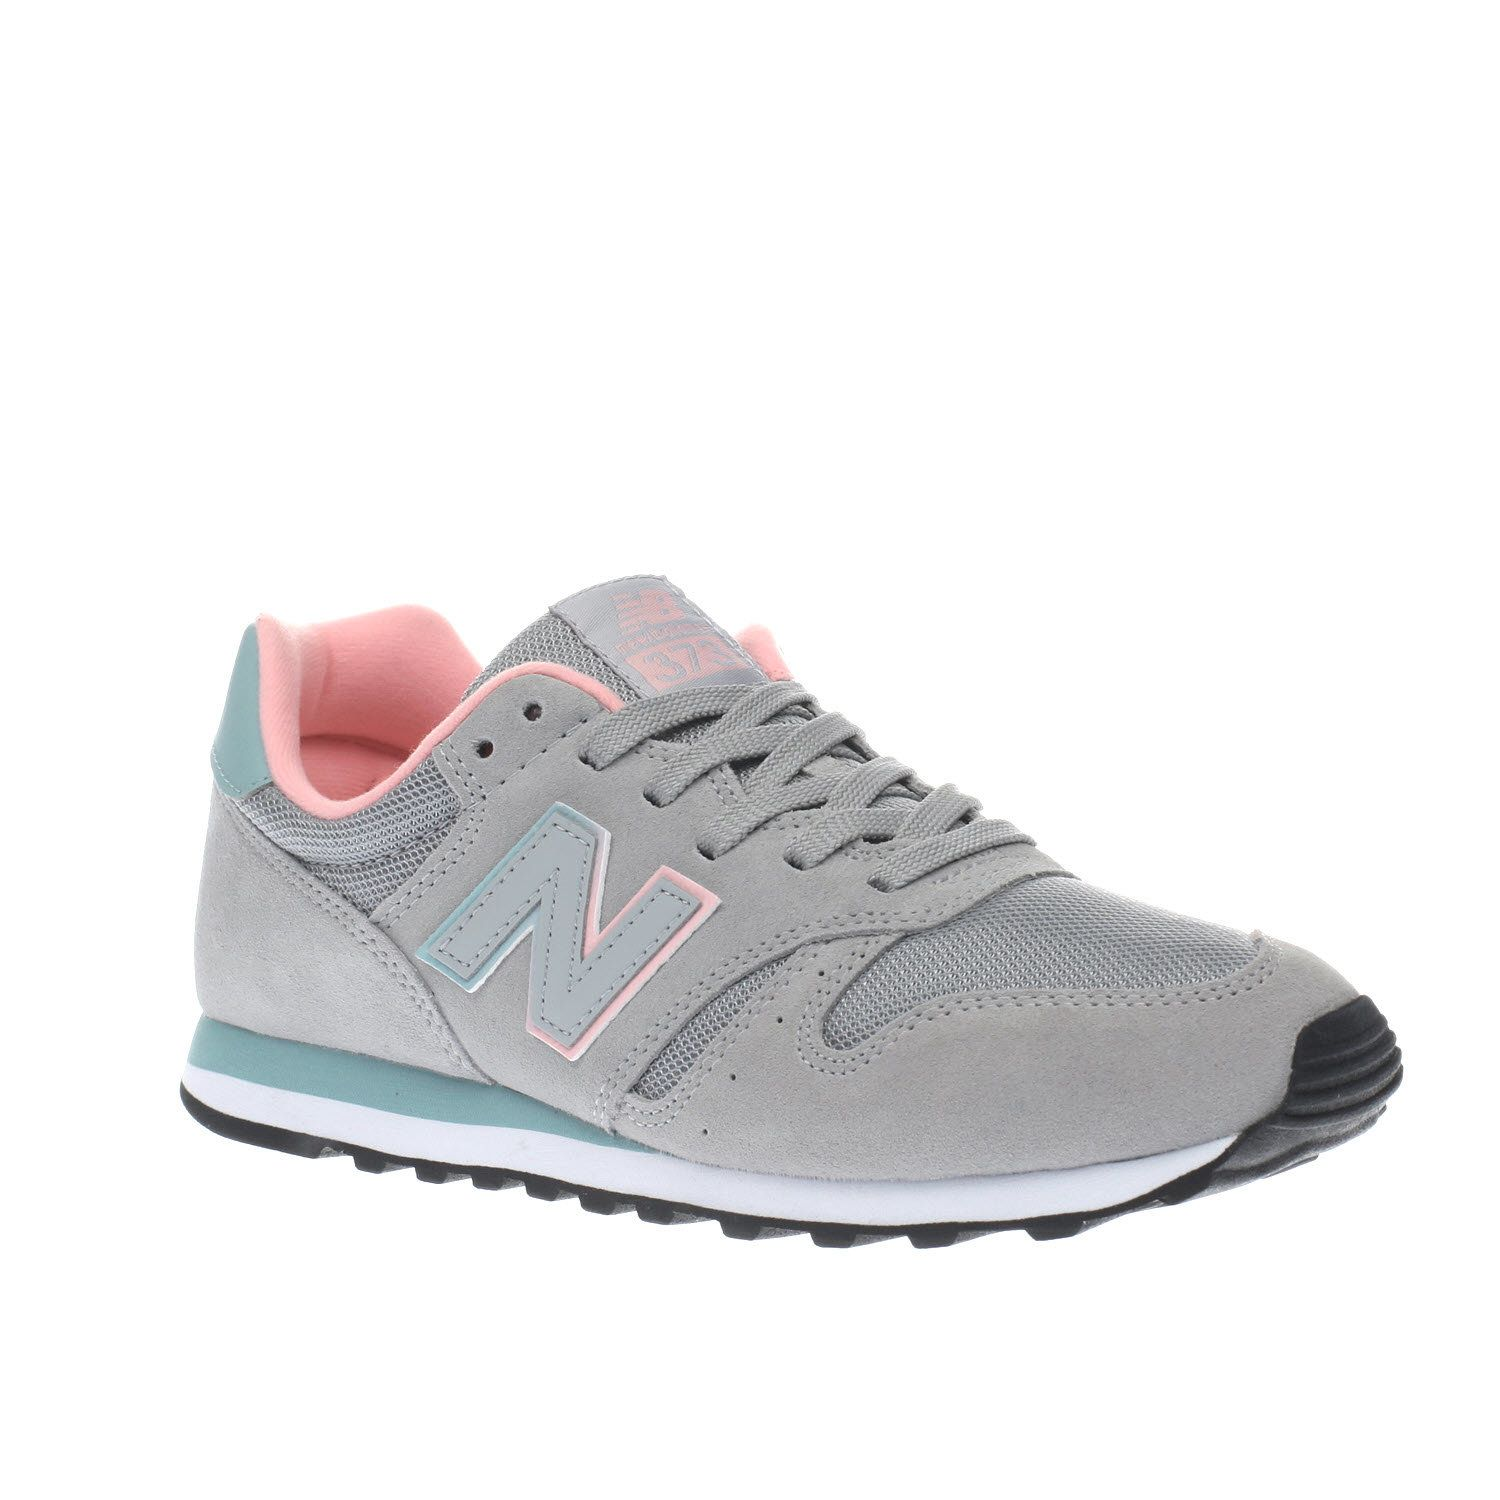 Mens 373 Modern Classics Low-Top Sneakers, Grey (Light Grey), 10 UK New Balance